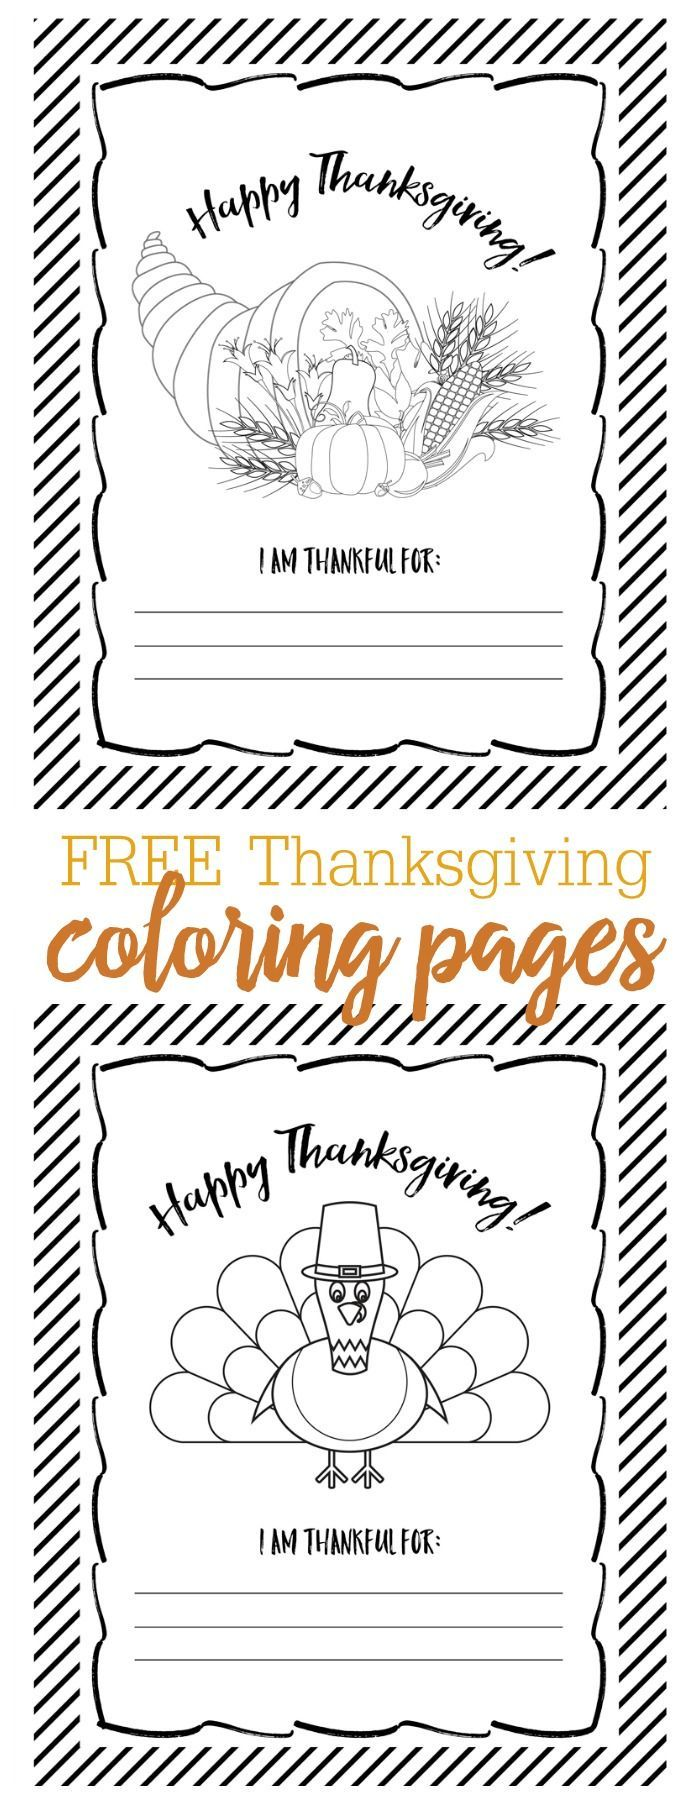 FREE Thanksgiving Coloring Pages - just download, print and use to color in November or perfect for the kids table on Thanksgiving!